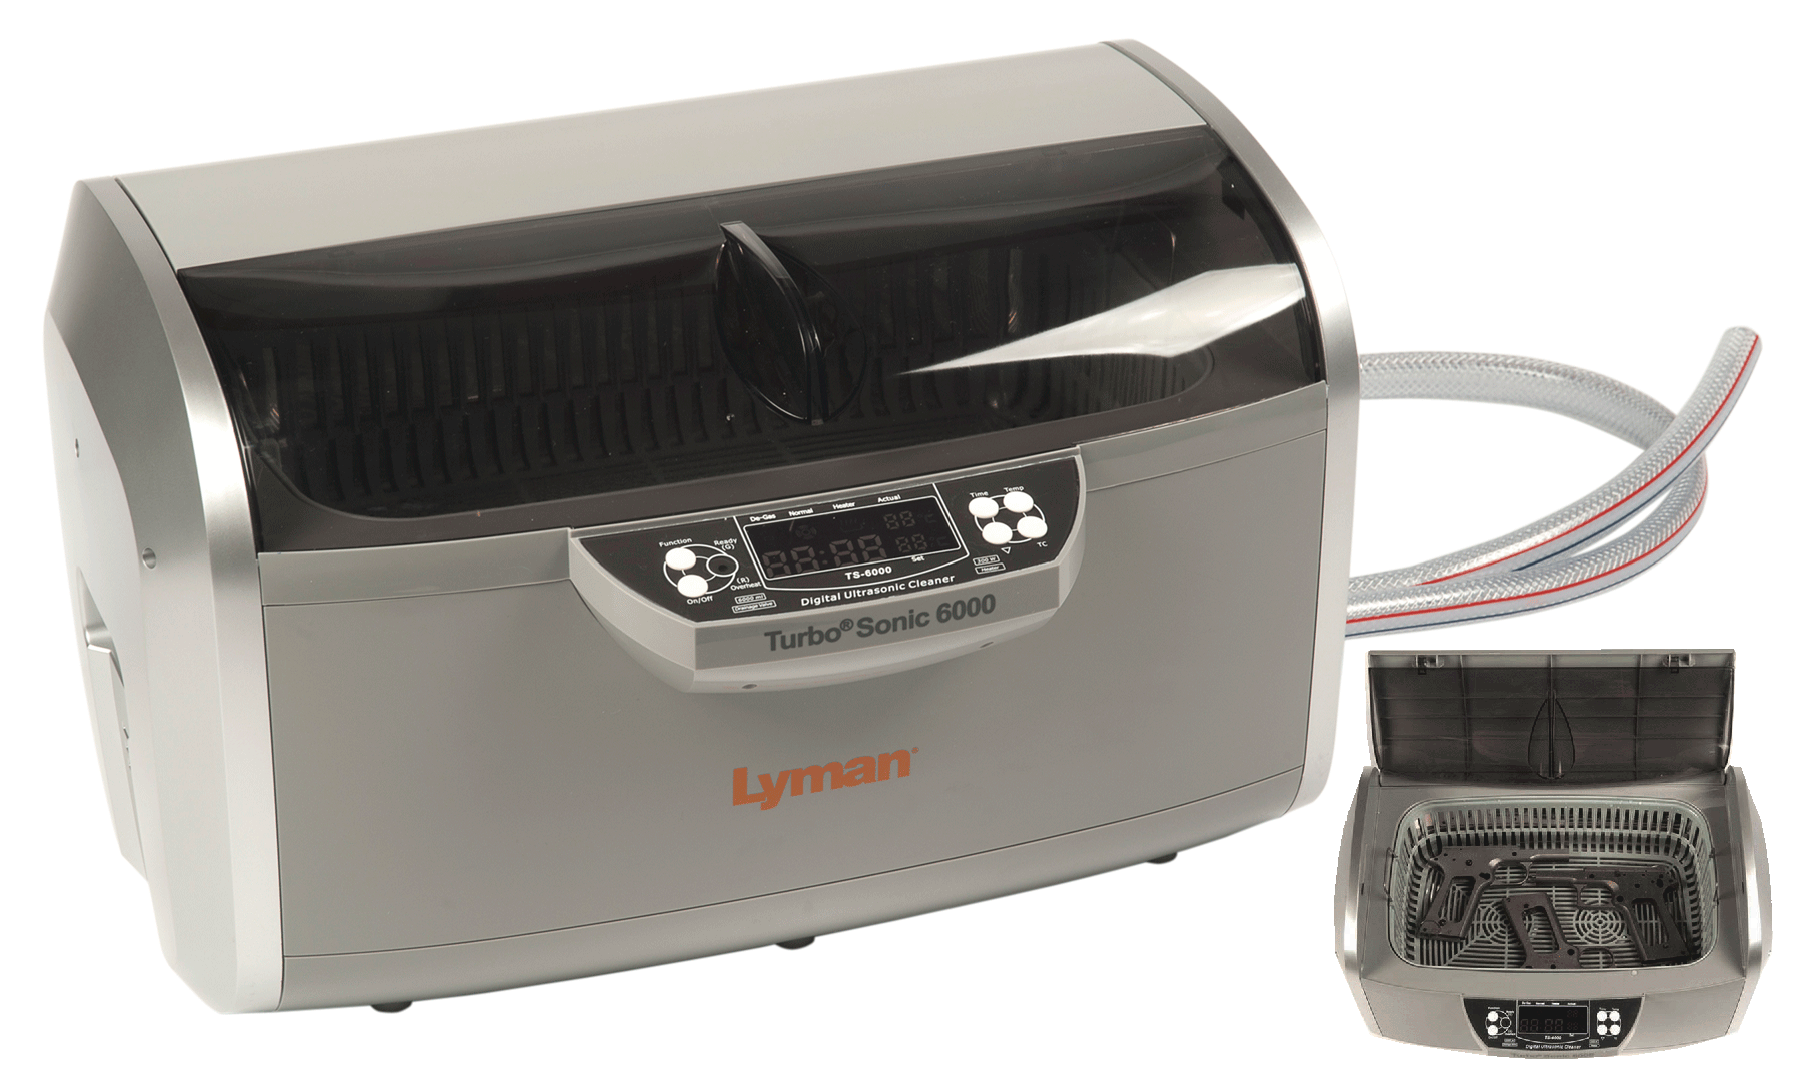 Lyman Turbo Sonic 6000 Ultrasonic Case Cleaner - 6.3 Quart